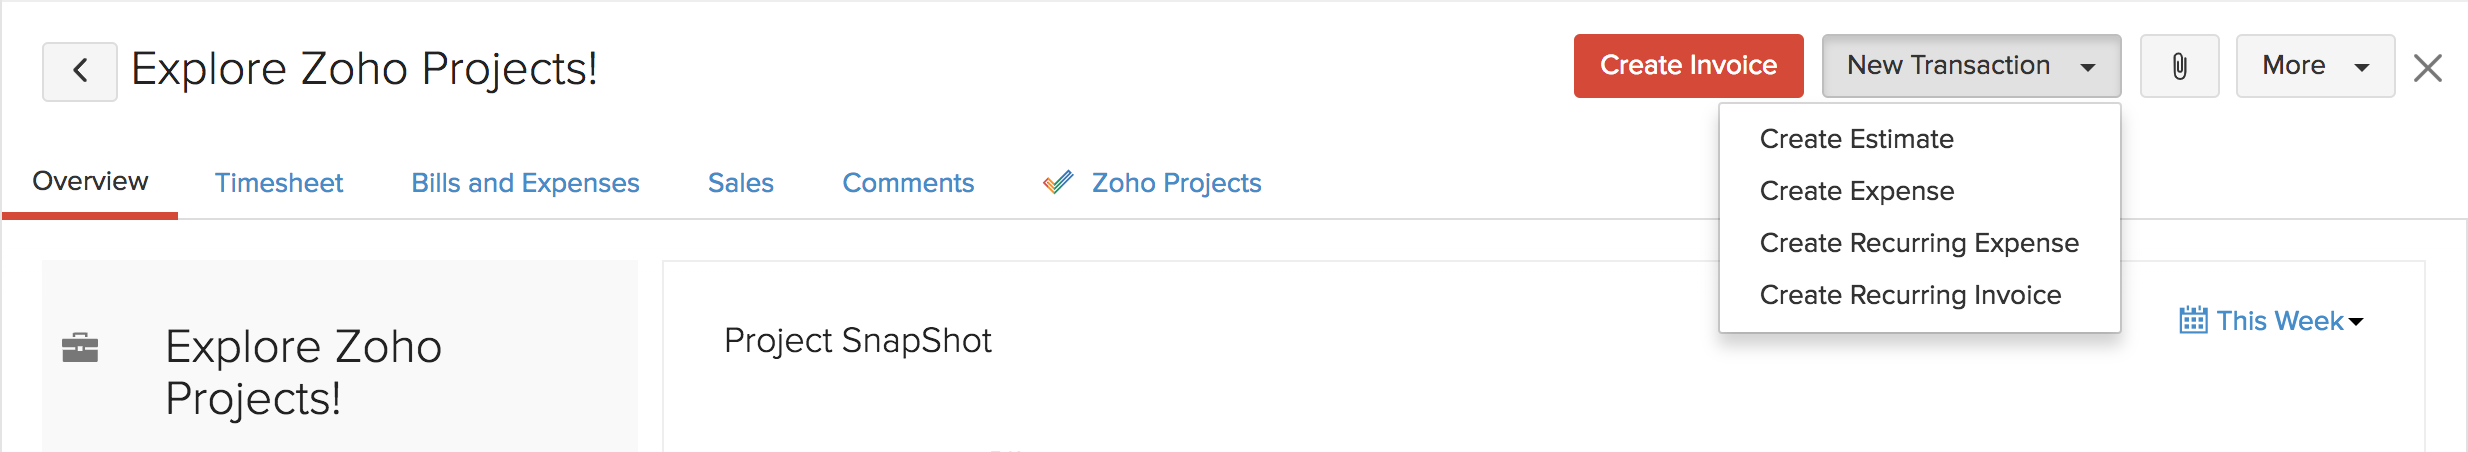 Zoho Projects Create Transactions